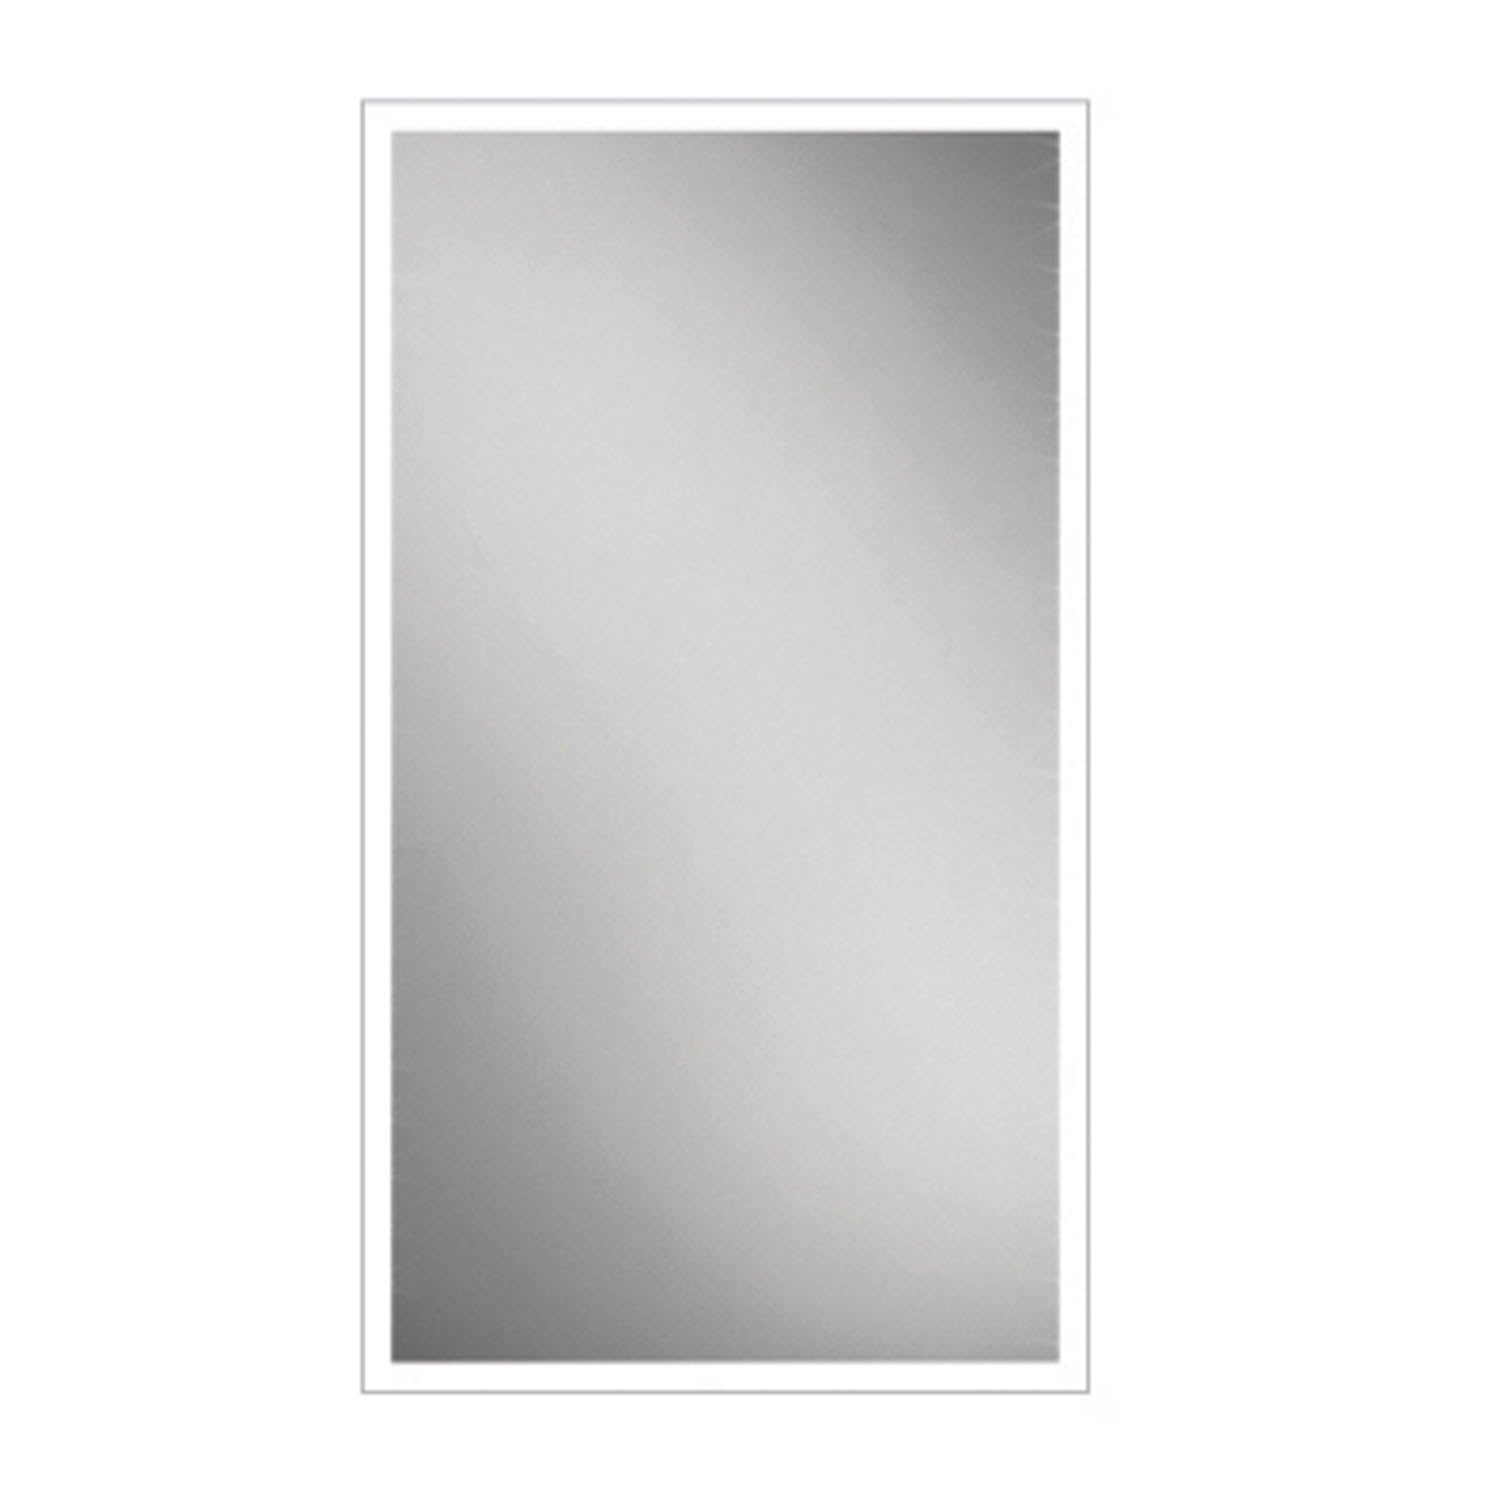 800x450mm Front Lit LED Light Mirror on a white background